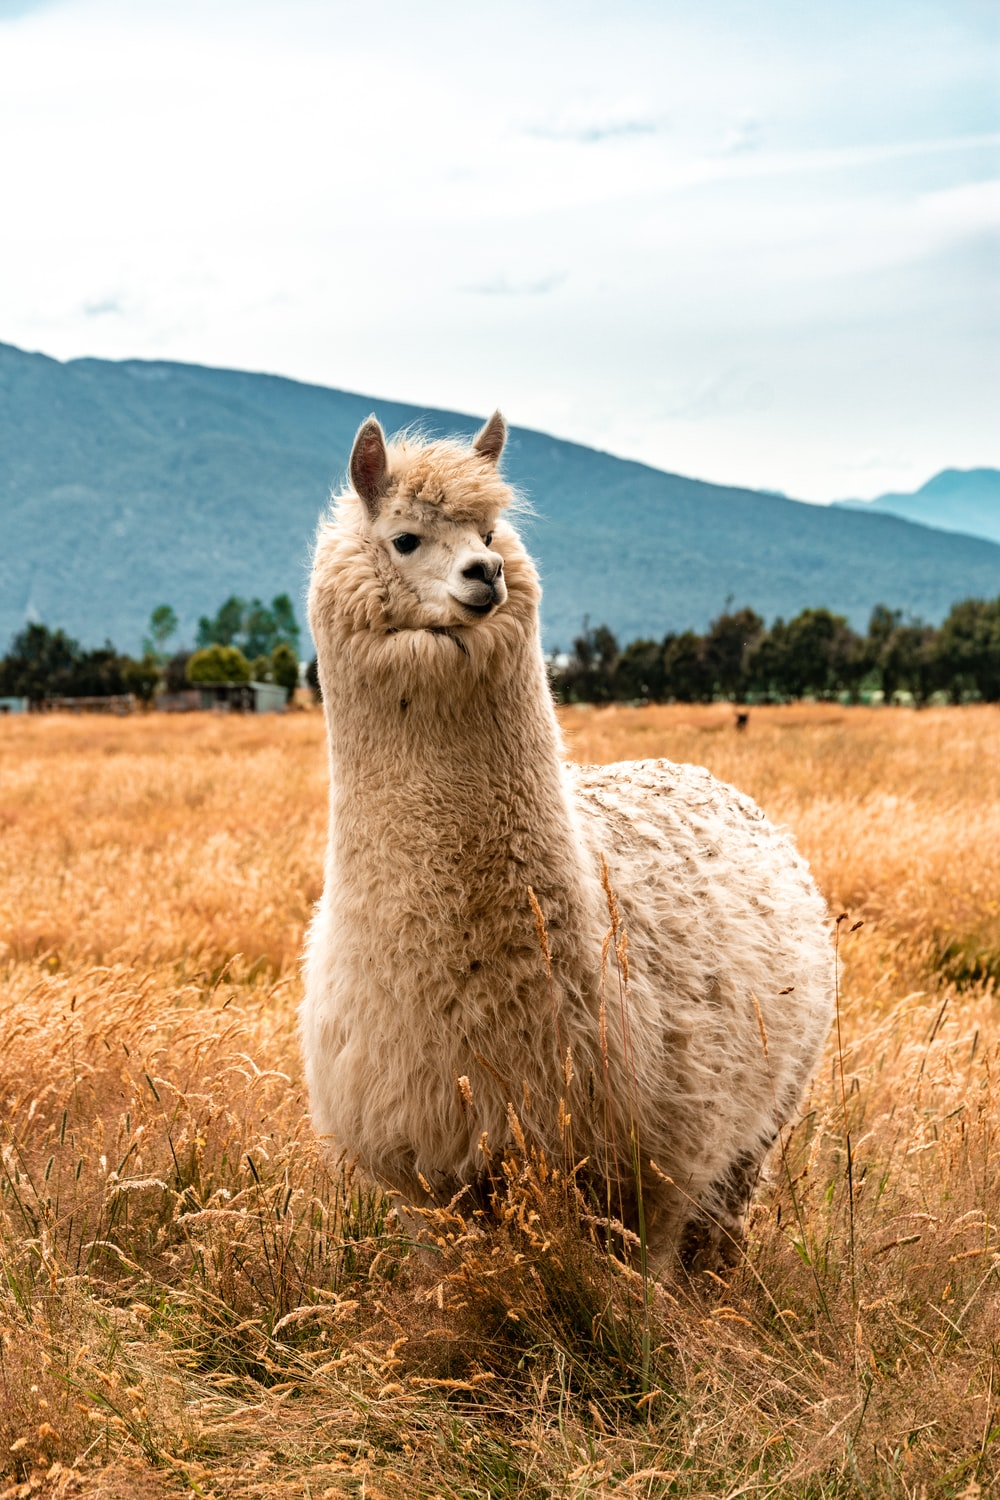 white llama on brown grass field during daytime